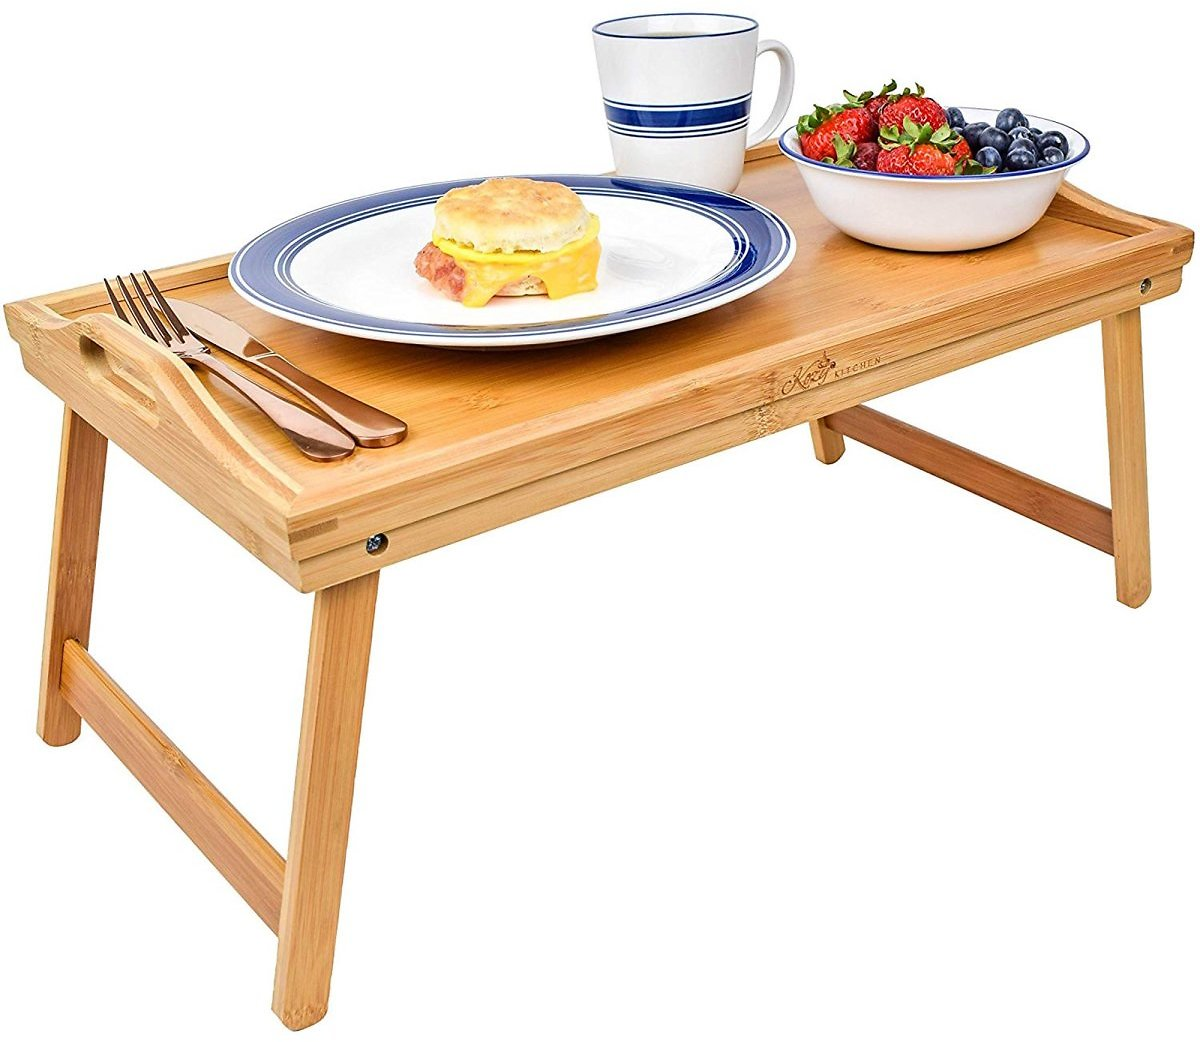 Foldable Breakfast Tray  Large Organic Bamboo Folding Serving Tray, Laptop Desk, Bed Table, Lap Desk  Natural and Eco-Friendly T